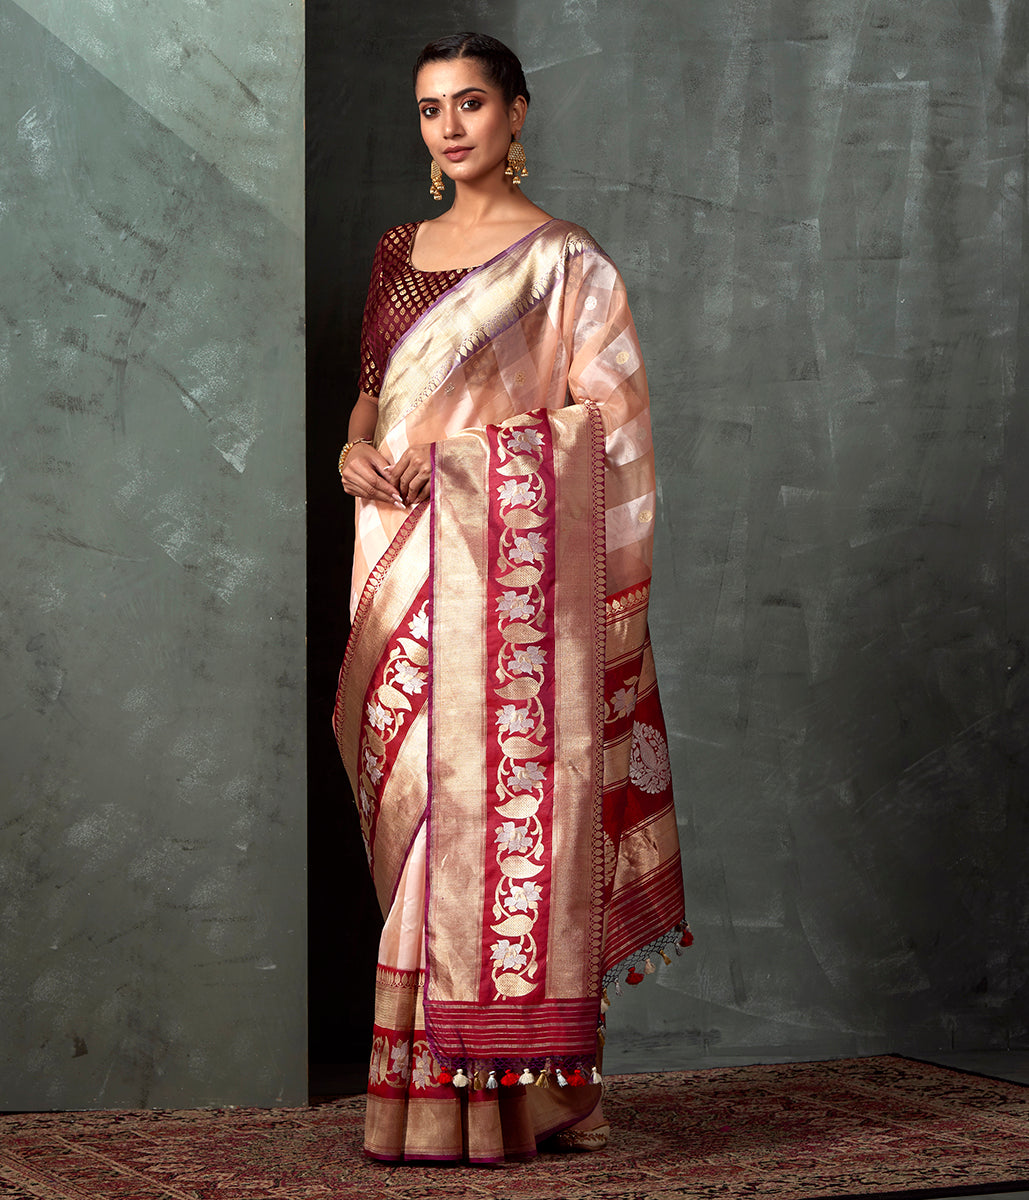 Handwoven Peach Striped Kora Silk Banarasi with Red Border and Pallu